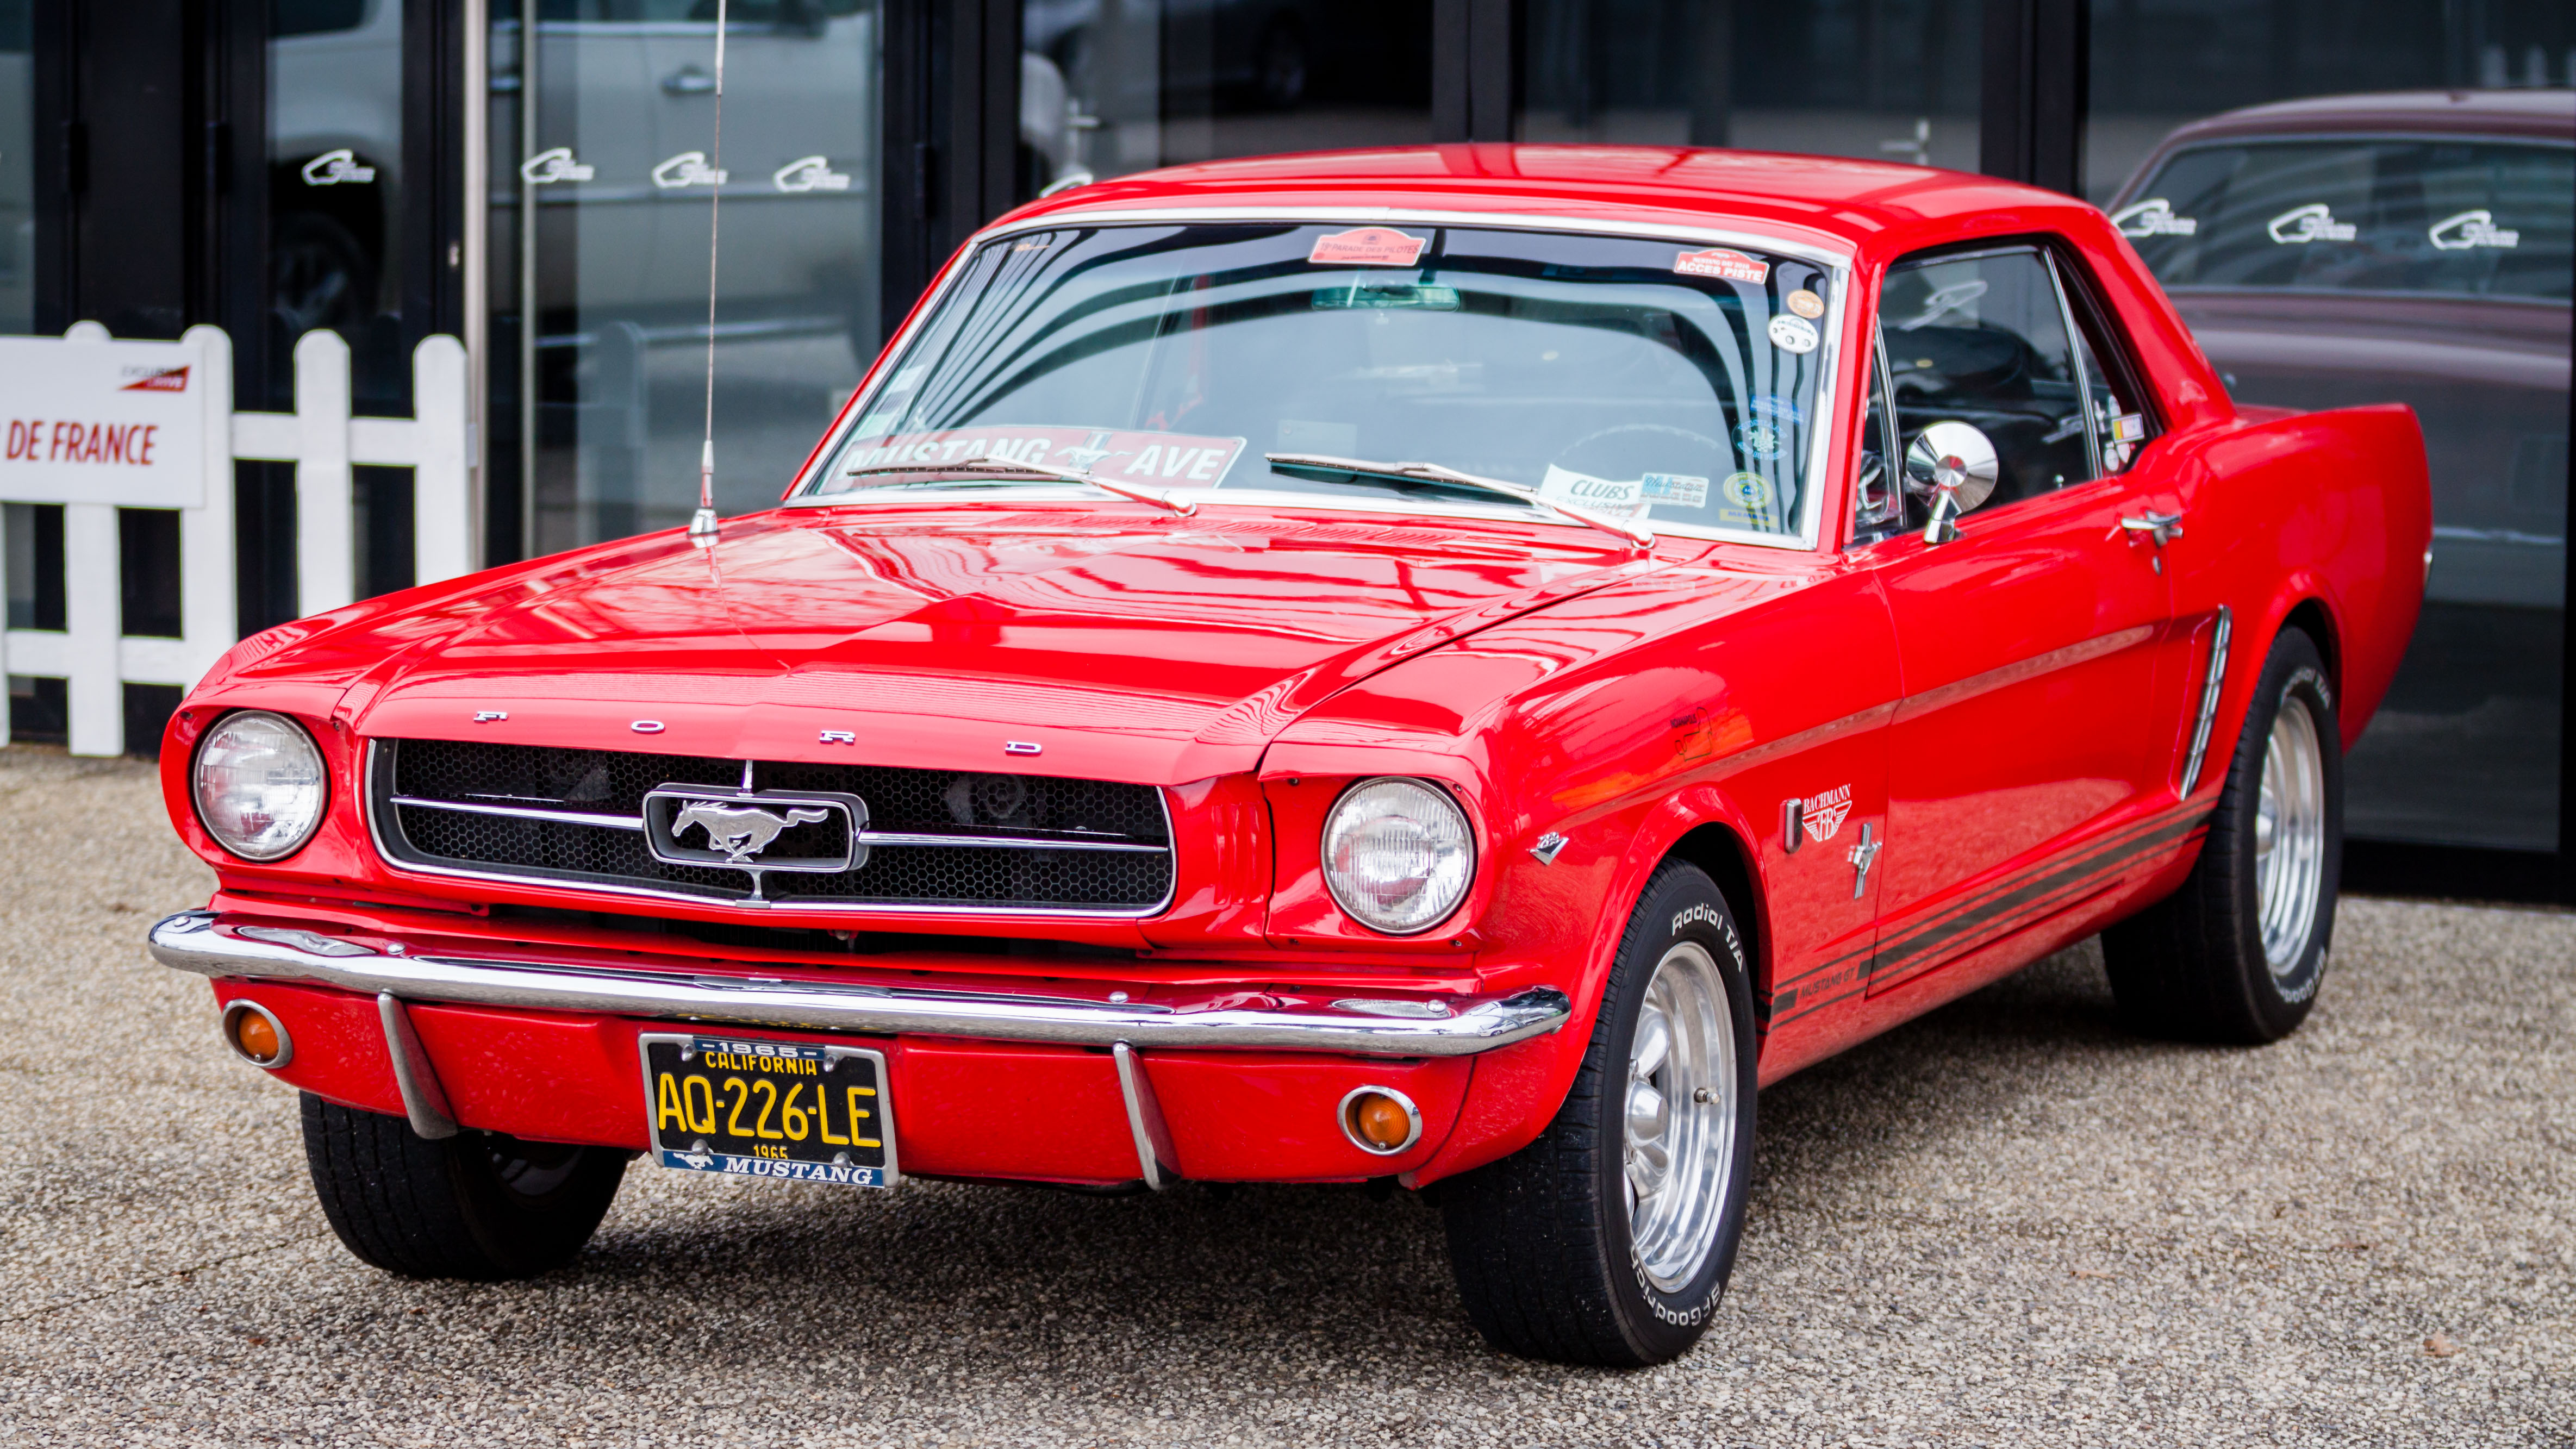 Classic Ford Mustang Wallpaper Posted By John Thompson